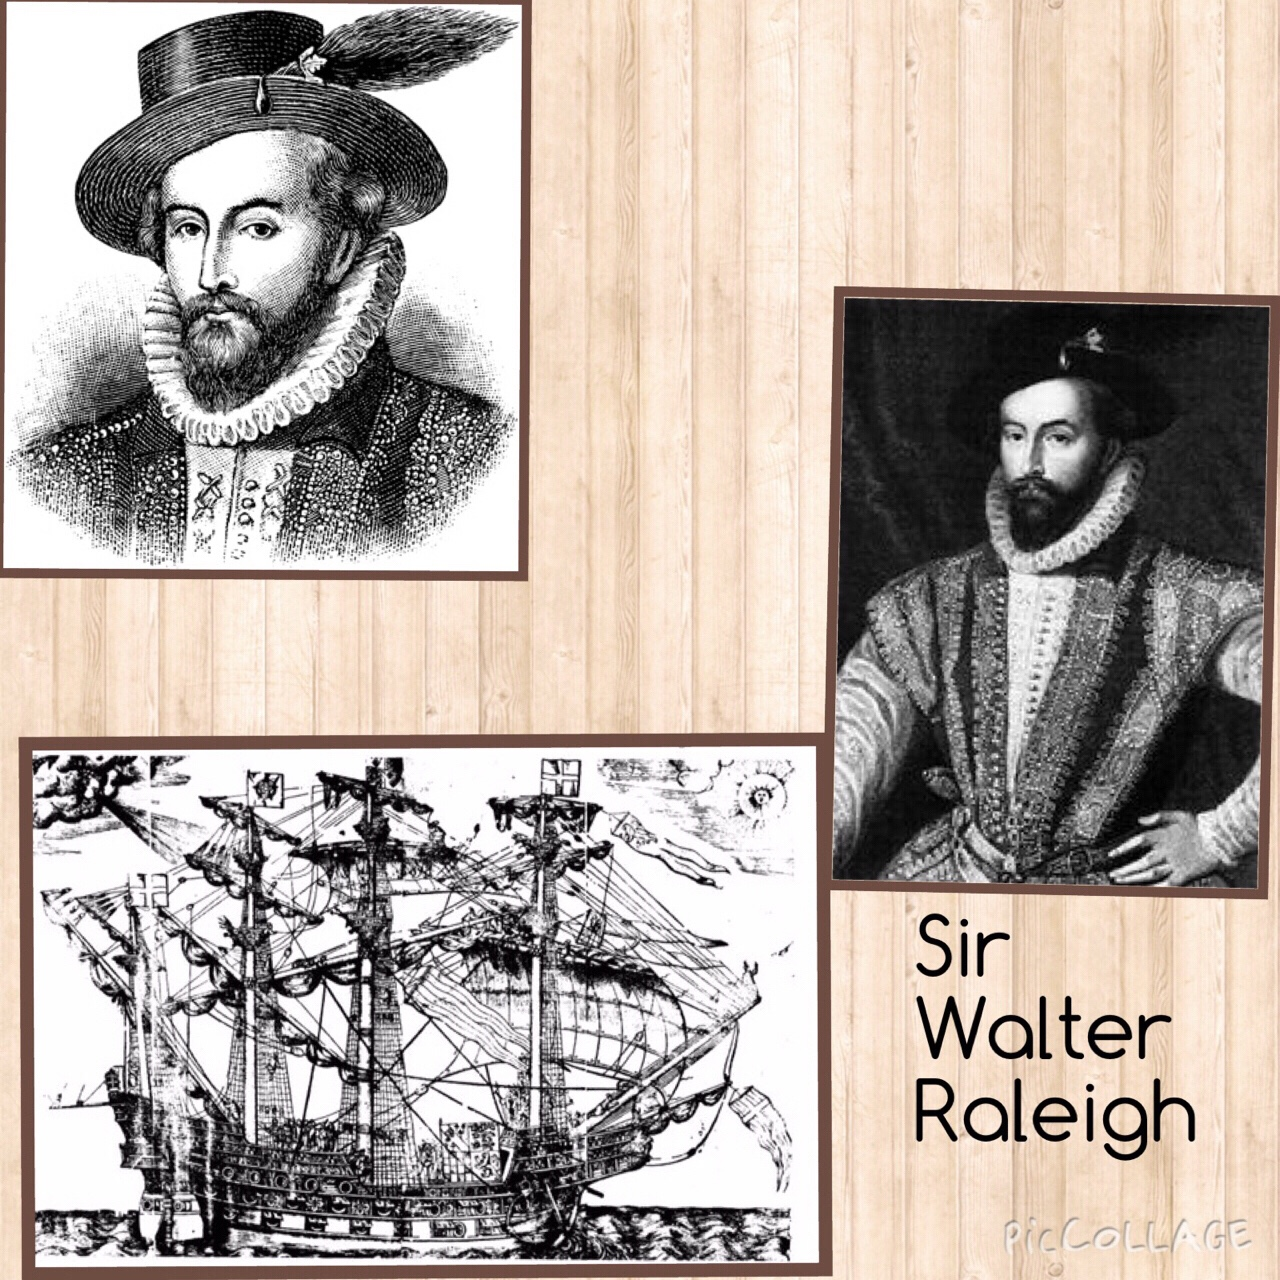 "the lie by sir walter raleigh essay Written by sir walter raleigh, an english poet and explorer, the soul's errand also known as ""the lie"" in some editions is a satirical poem of a dying man's instruction to his soul to expose the lies and imperfections of his time."